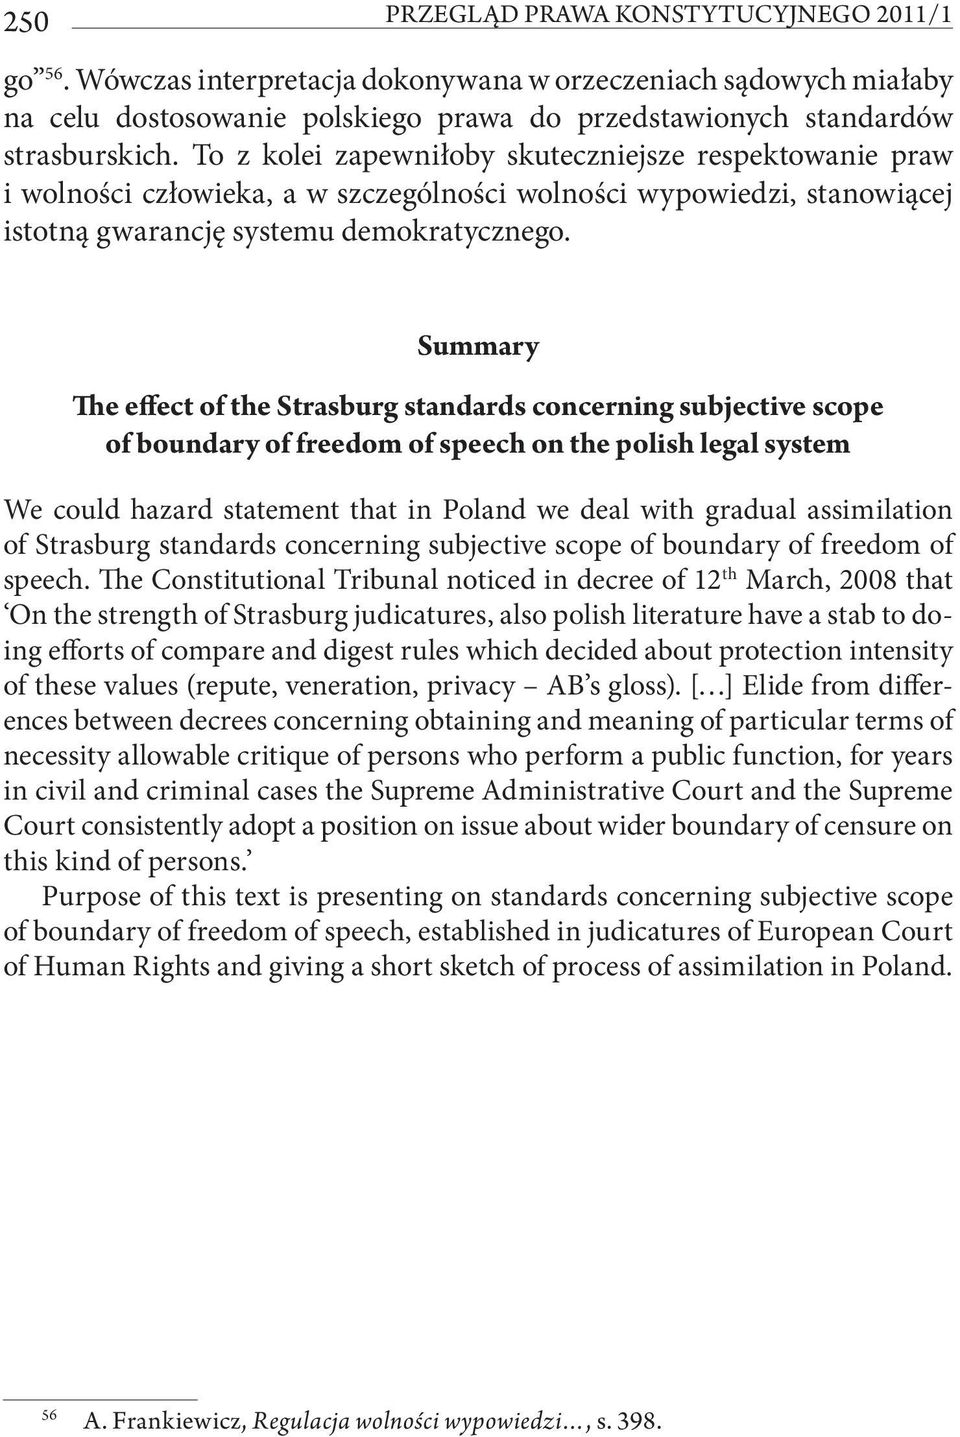 Summary The effect of the Strasburg standards concerning subjective scope of boundary of freedom of speech on the polish legal system We could hazard statement that in Poland we deal with gradual